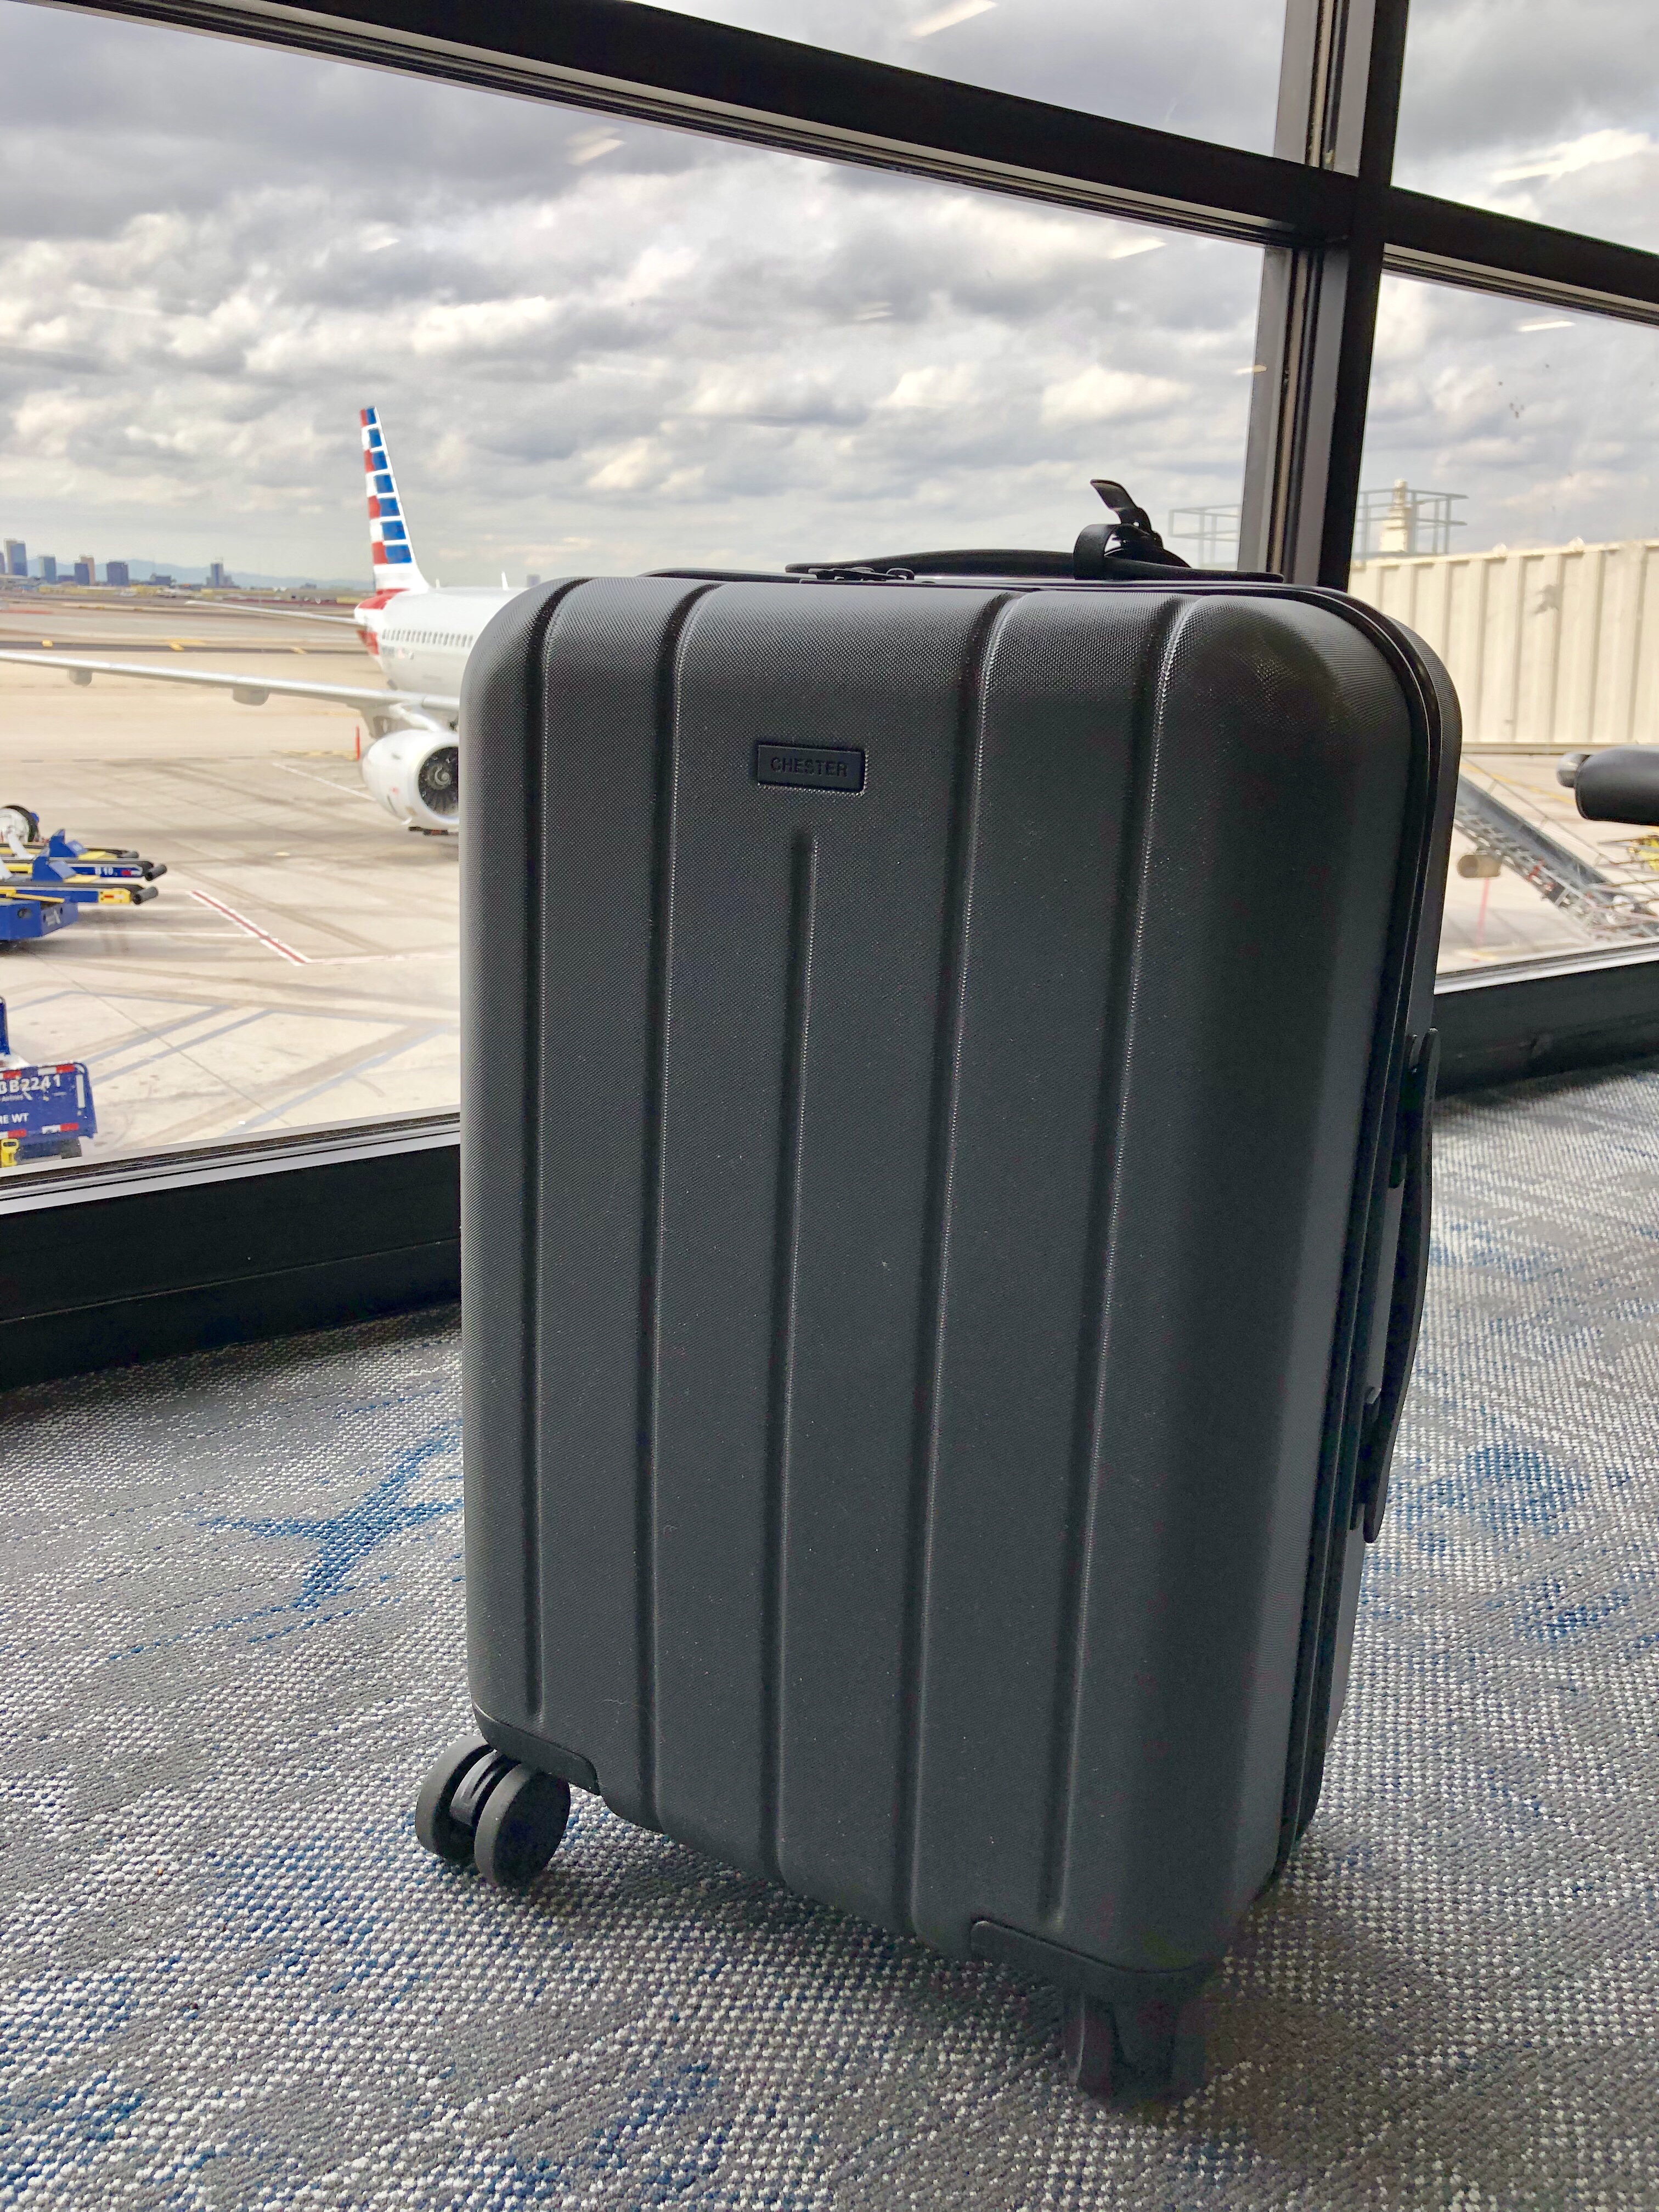 carry-on Suitcase at the airport